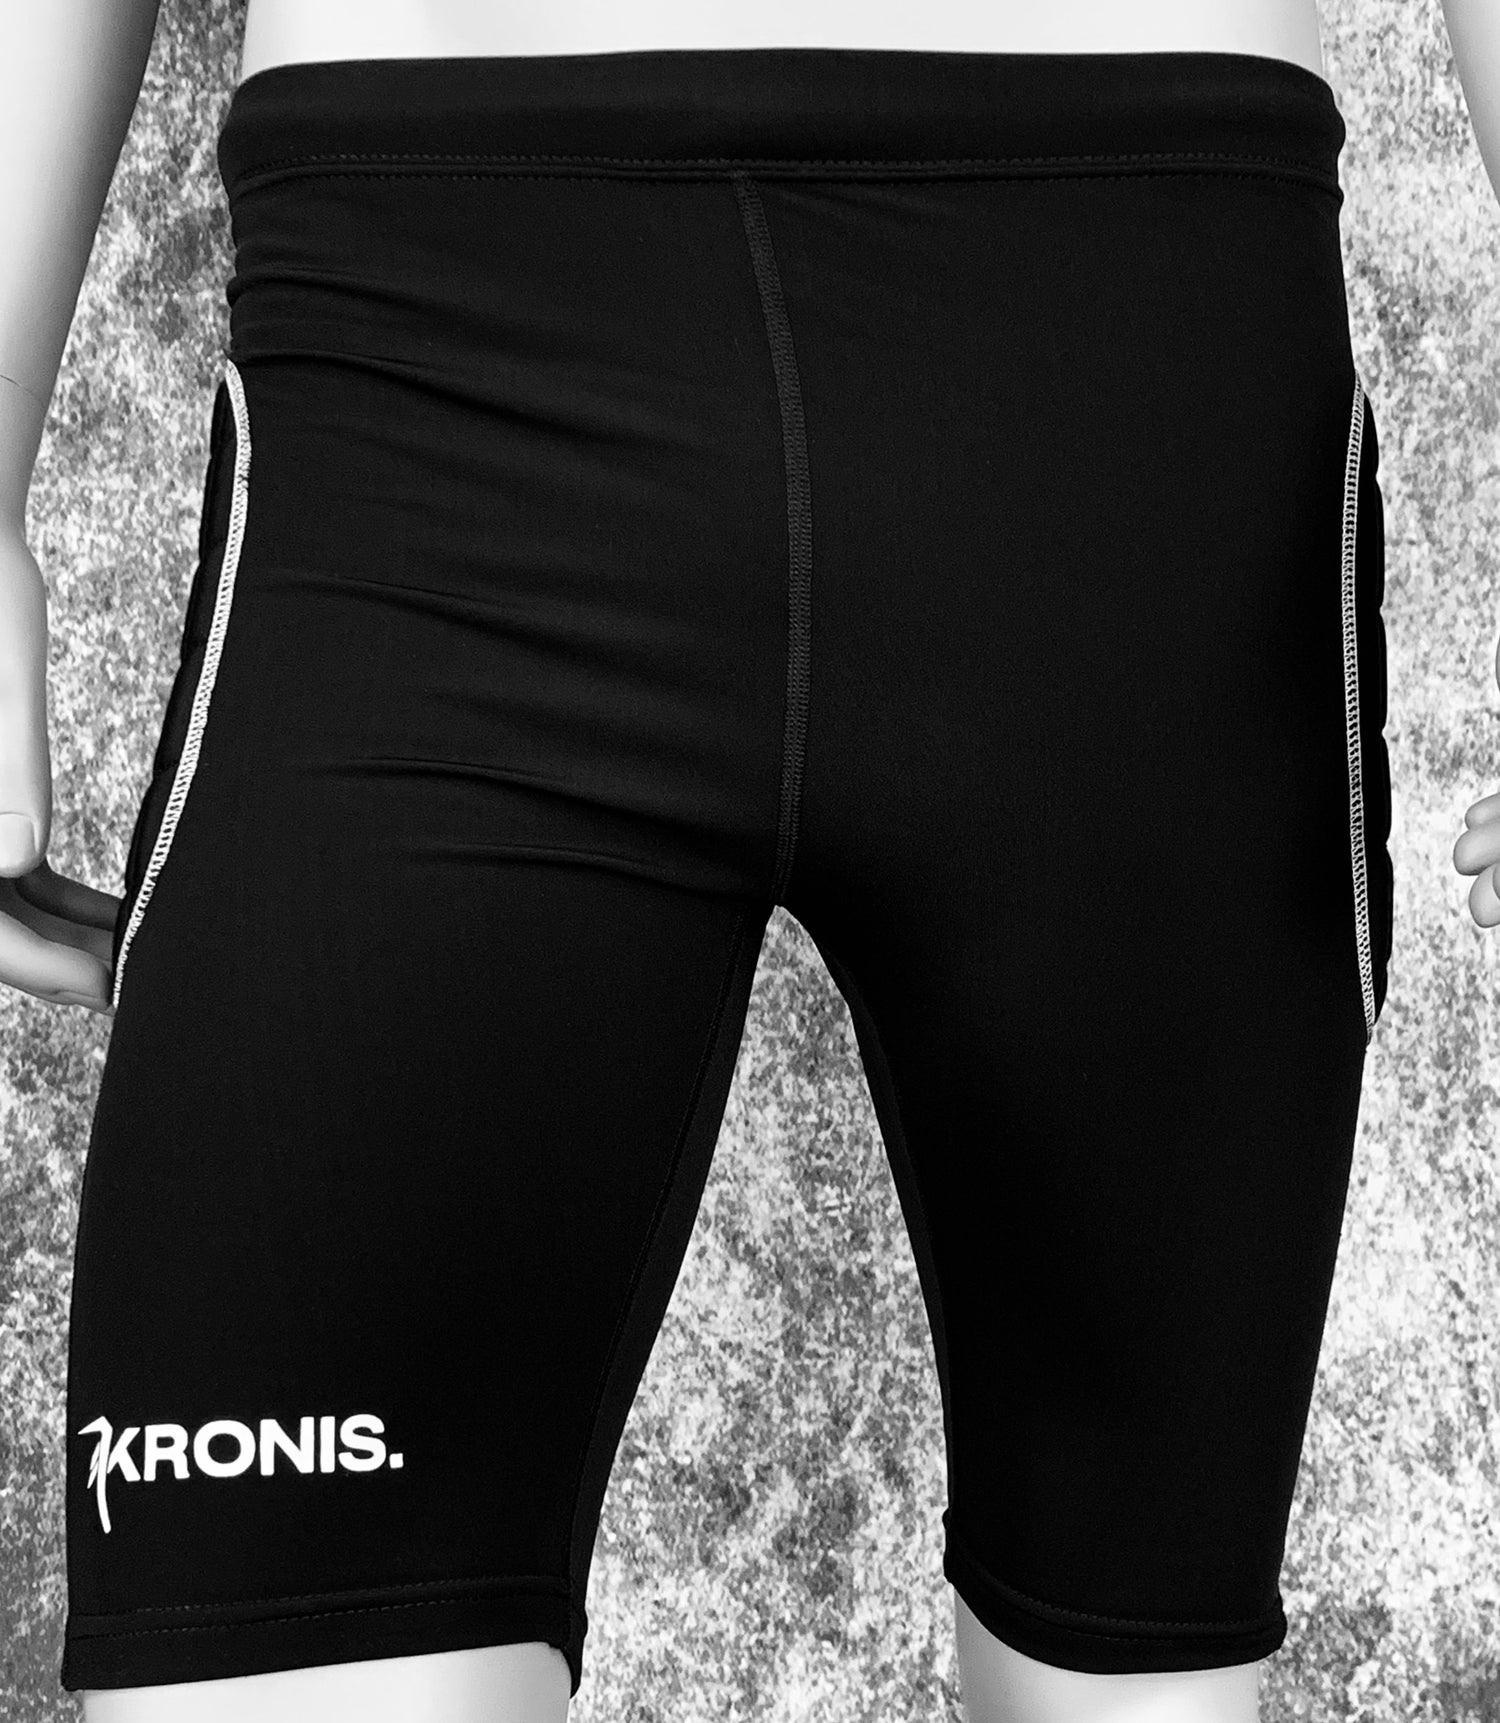 Image of Kronis Injury Prevention Shorts